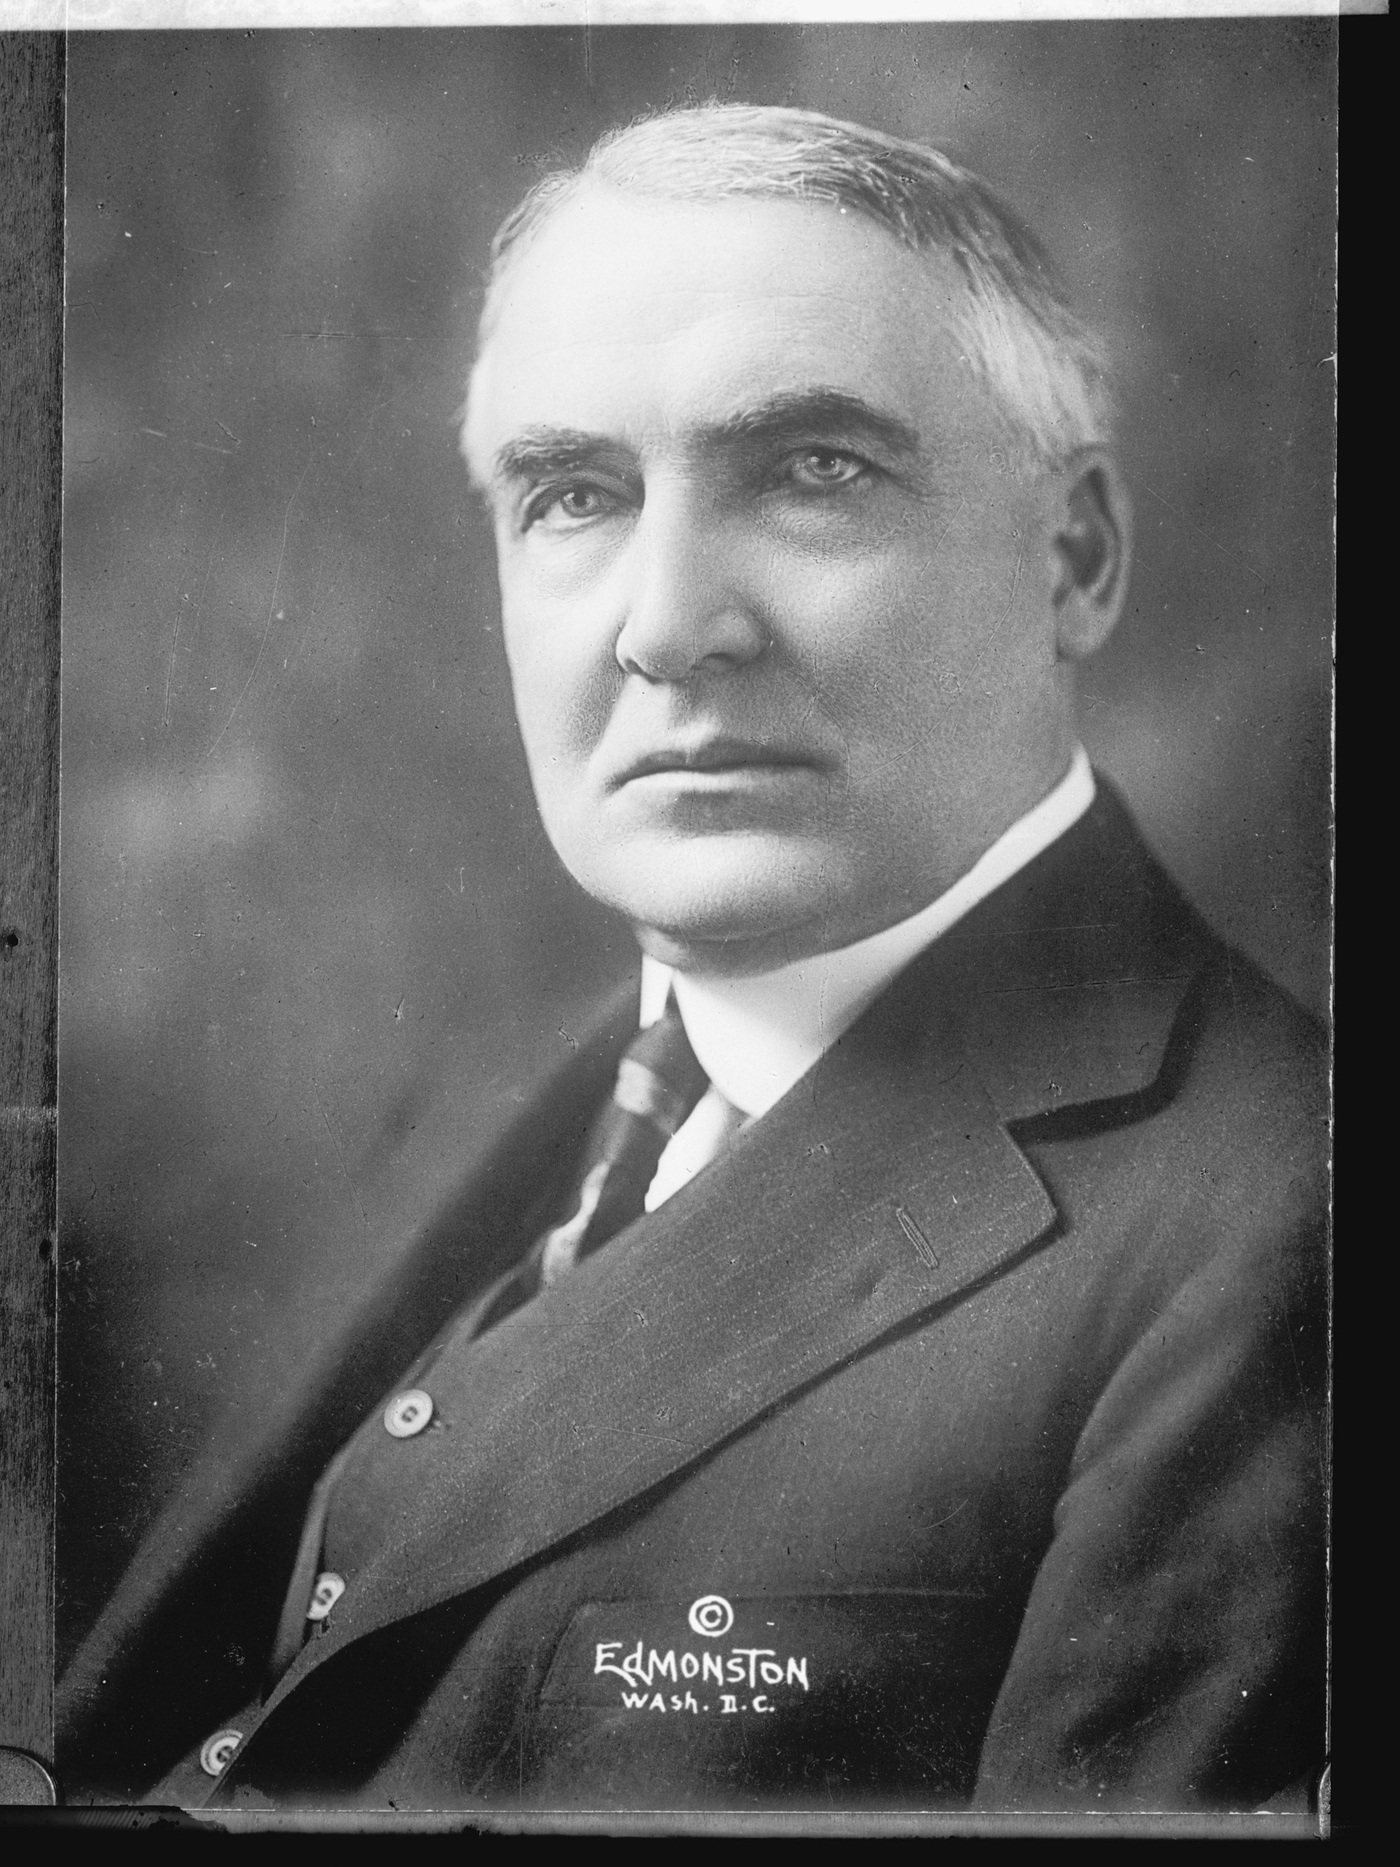 presidents harding Genetic test proves president harding did father a love child with mistress who he would have sex with in a west wing closet dna testing proves president harding fathered a daughter in 1919 with.